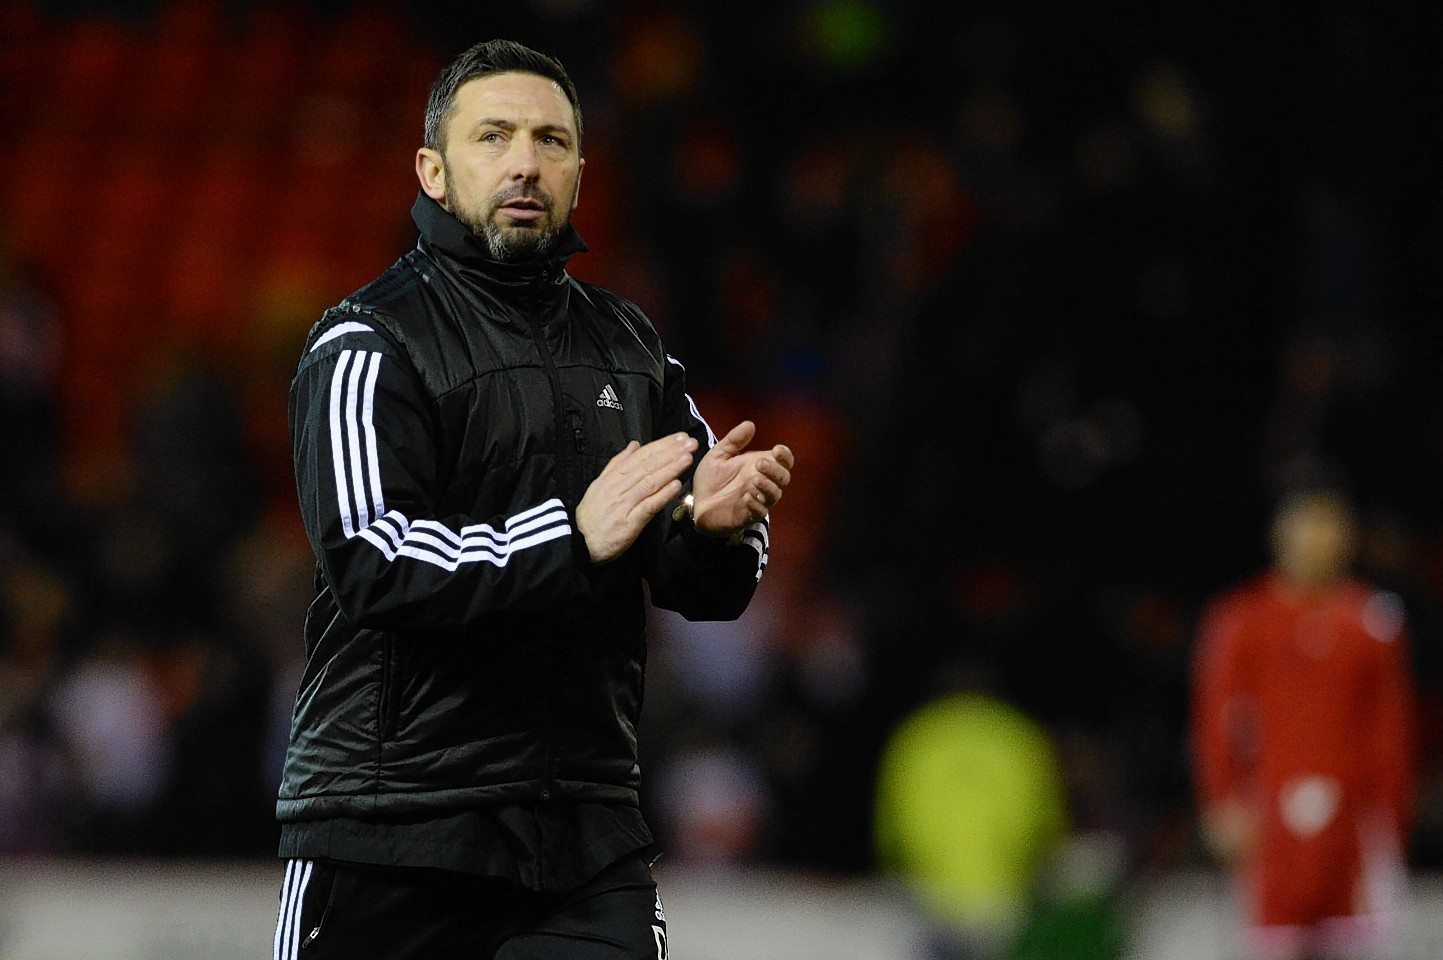 Derek McInnes applauds the home support after they helped spur the Dons on to a 3-3 draw.